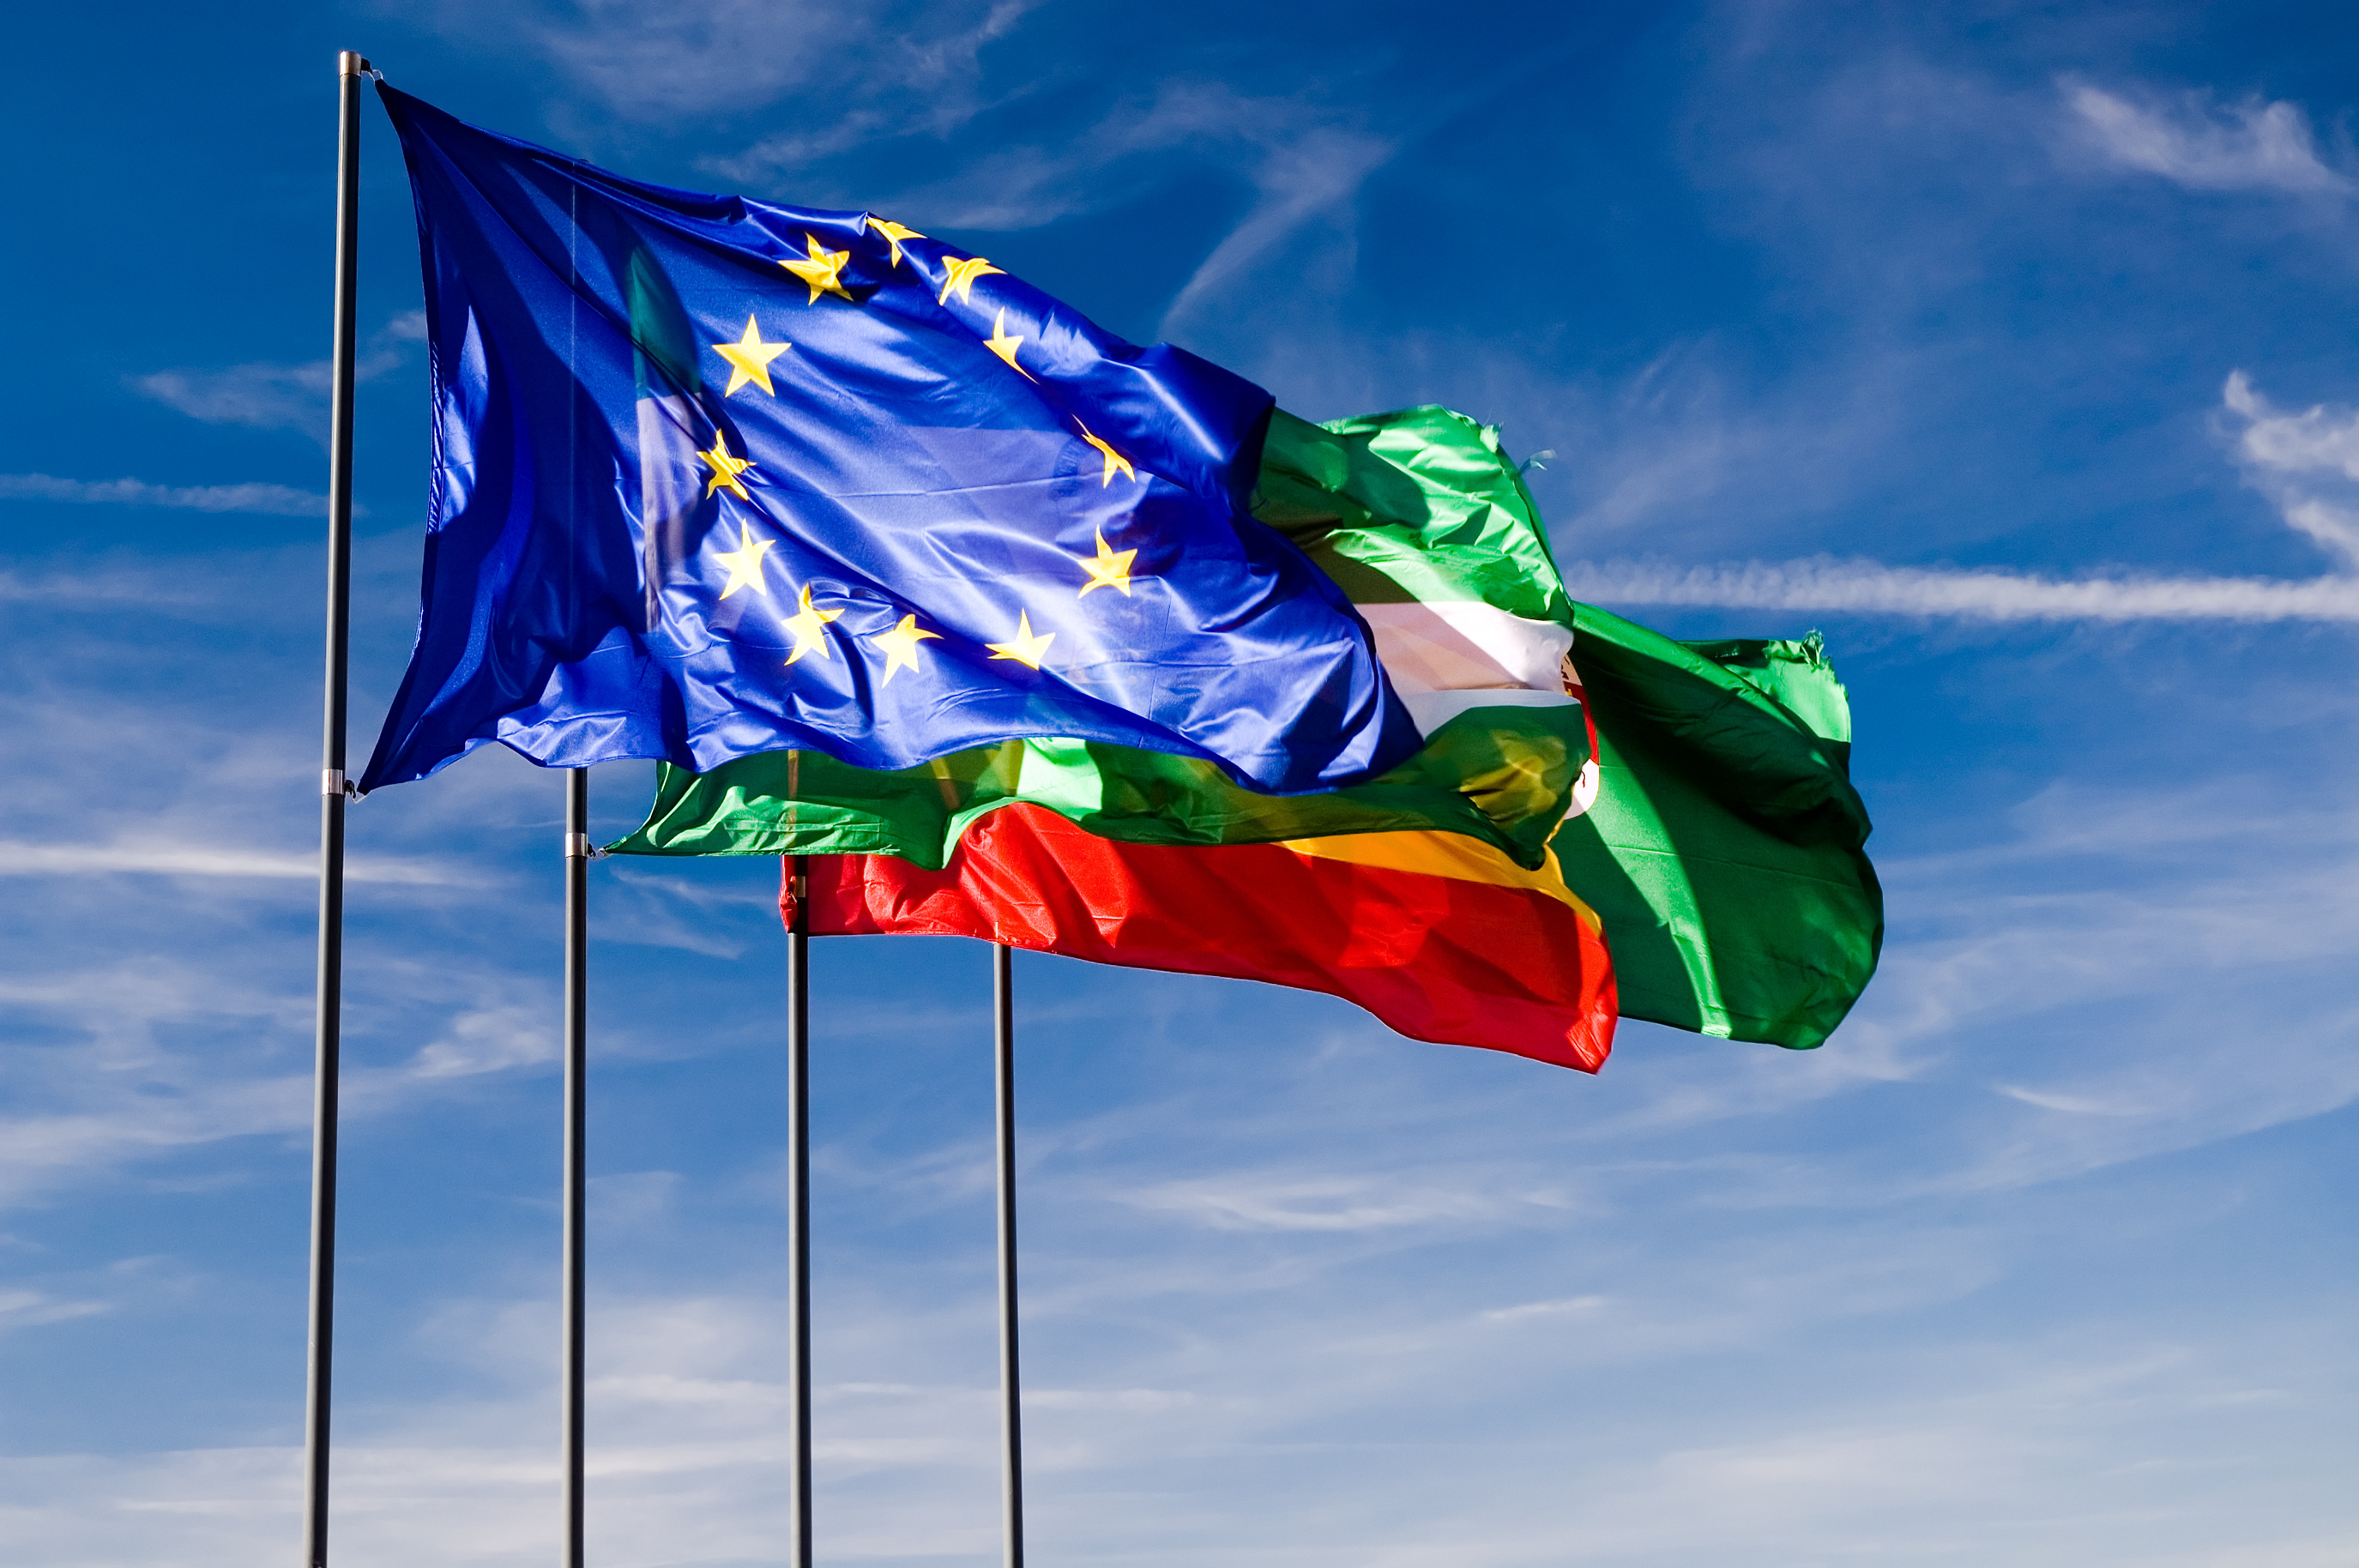 european flag against blue sky